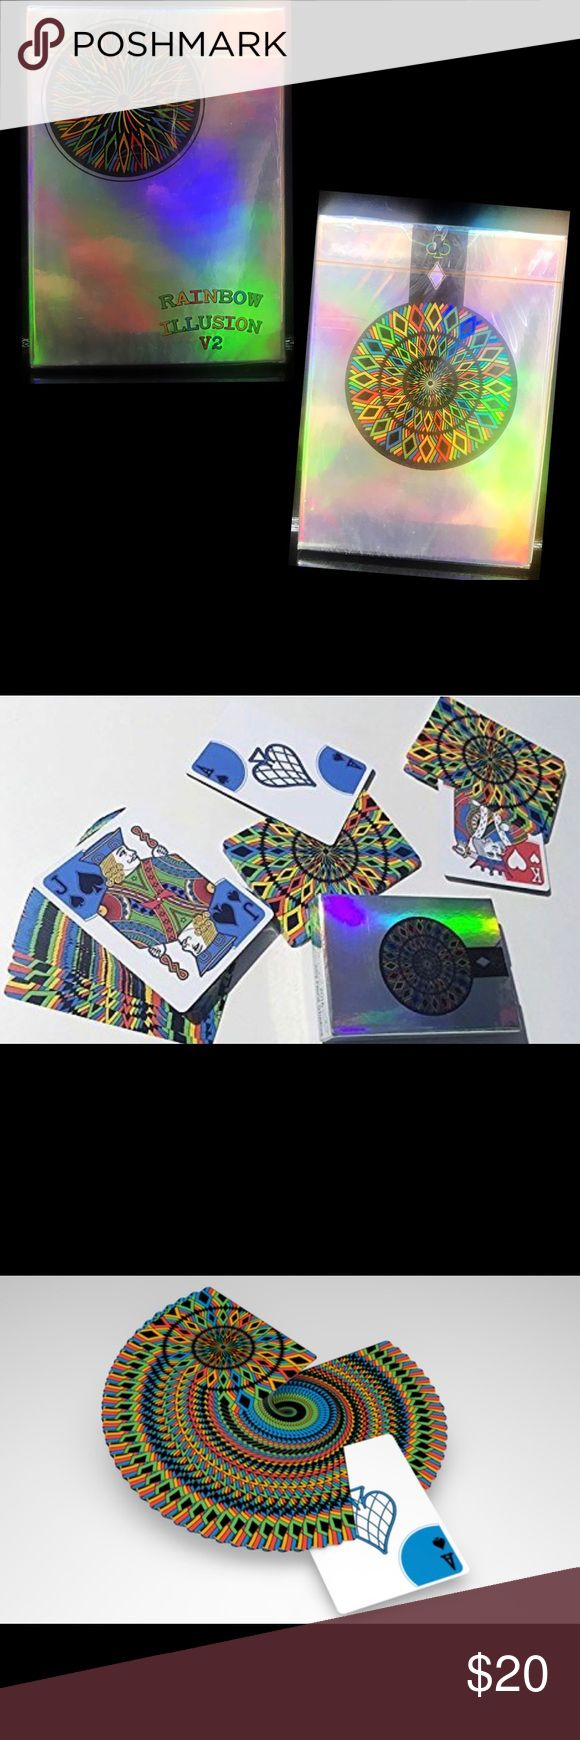 Rainbow Illusion V2 Playing Cards Limited Edition NEW / SEALED it has a cool and colorful design. While being a four-color pips deck, it is still kept traditional by having two colored suits in black and white. Card backs reveal all colors of the rainbow. The deck's beautiful tuck box is made of rainbow metallic paper, producing a gorgeous shine from different angles. Only 1,000 of these special decks have been printed, so get in while they're still available! lpcc Accessories